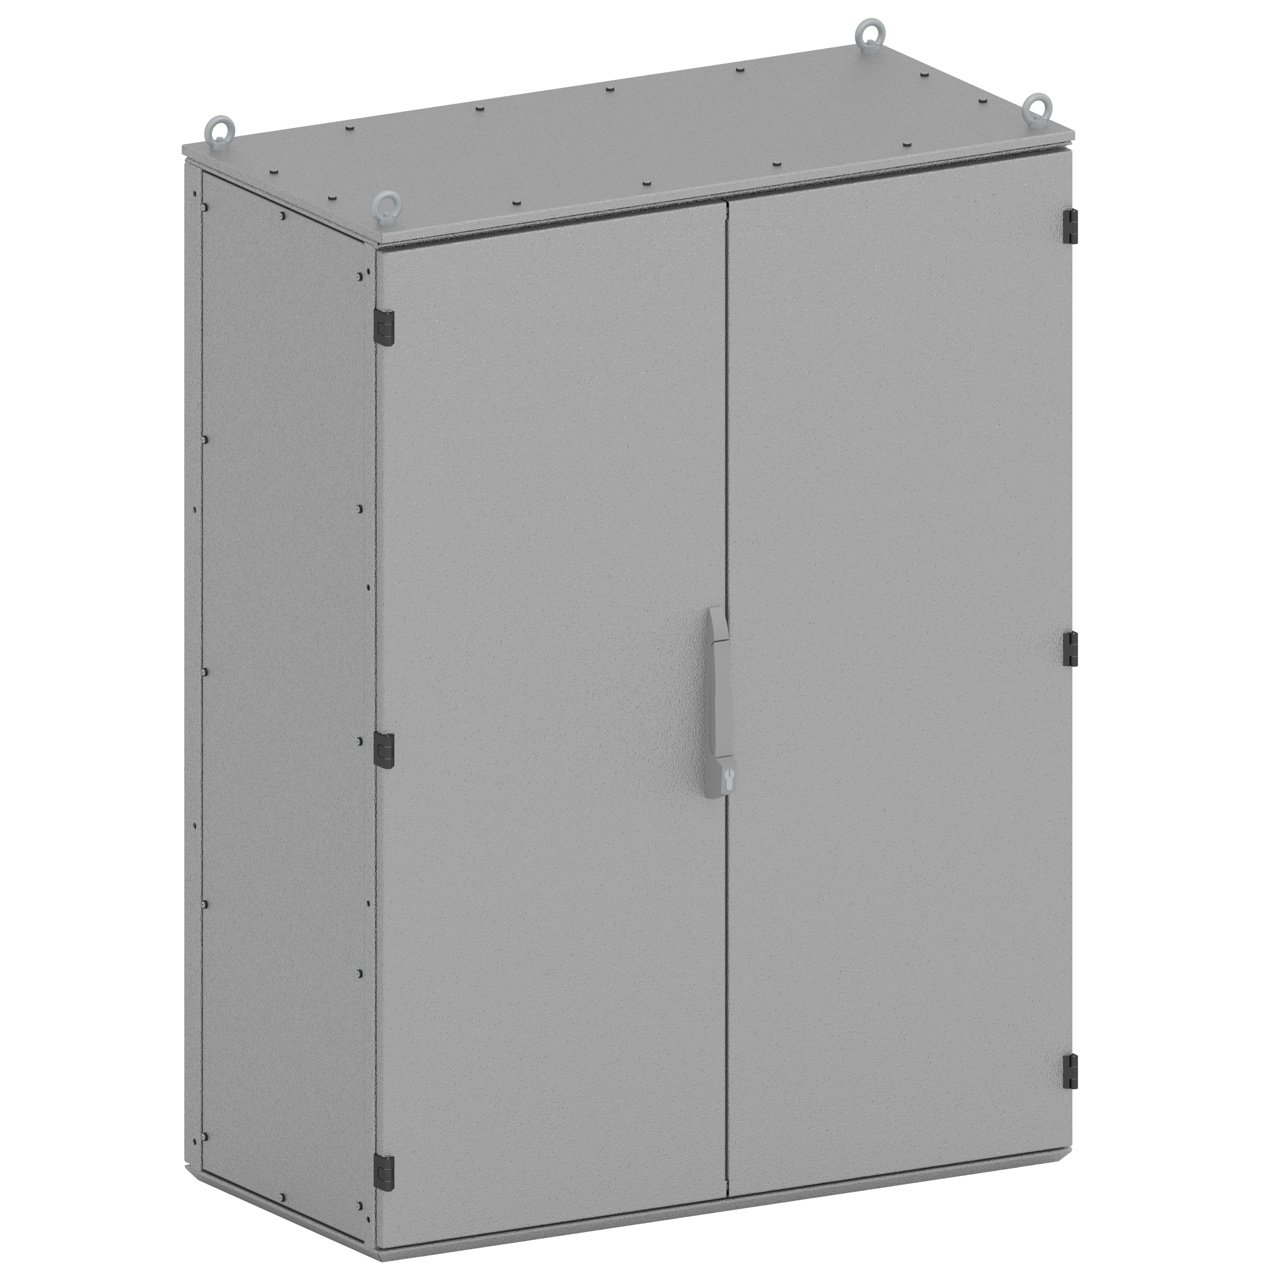 SencoPB's ESO-II two-door electrical enclosure has the largest maximum capacity at 500kg, with possibilities to customize.